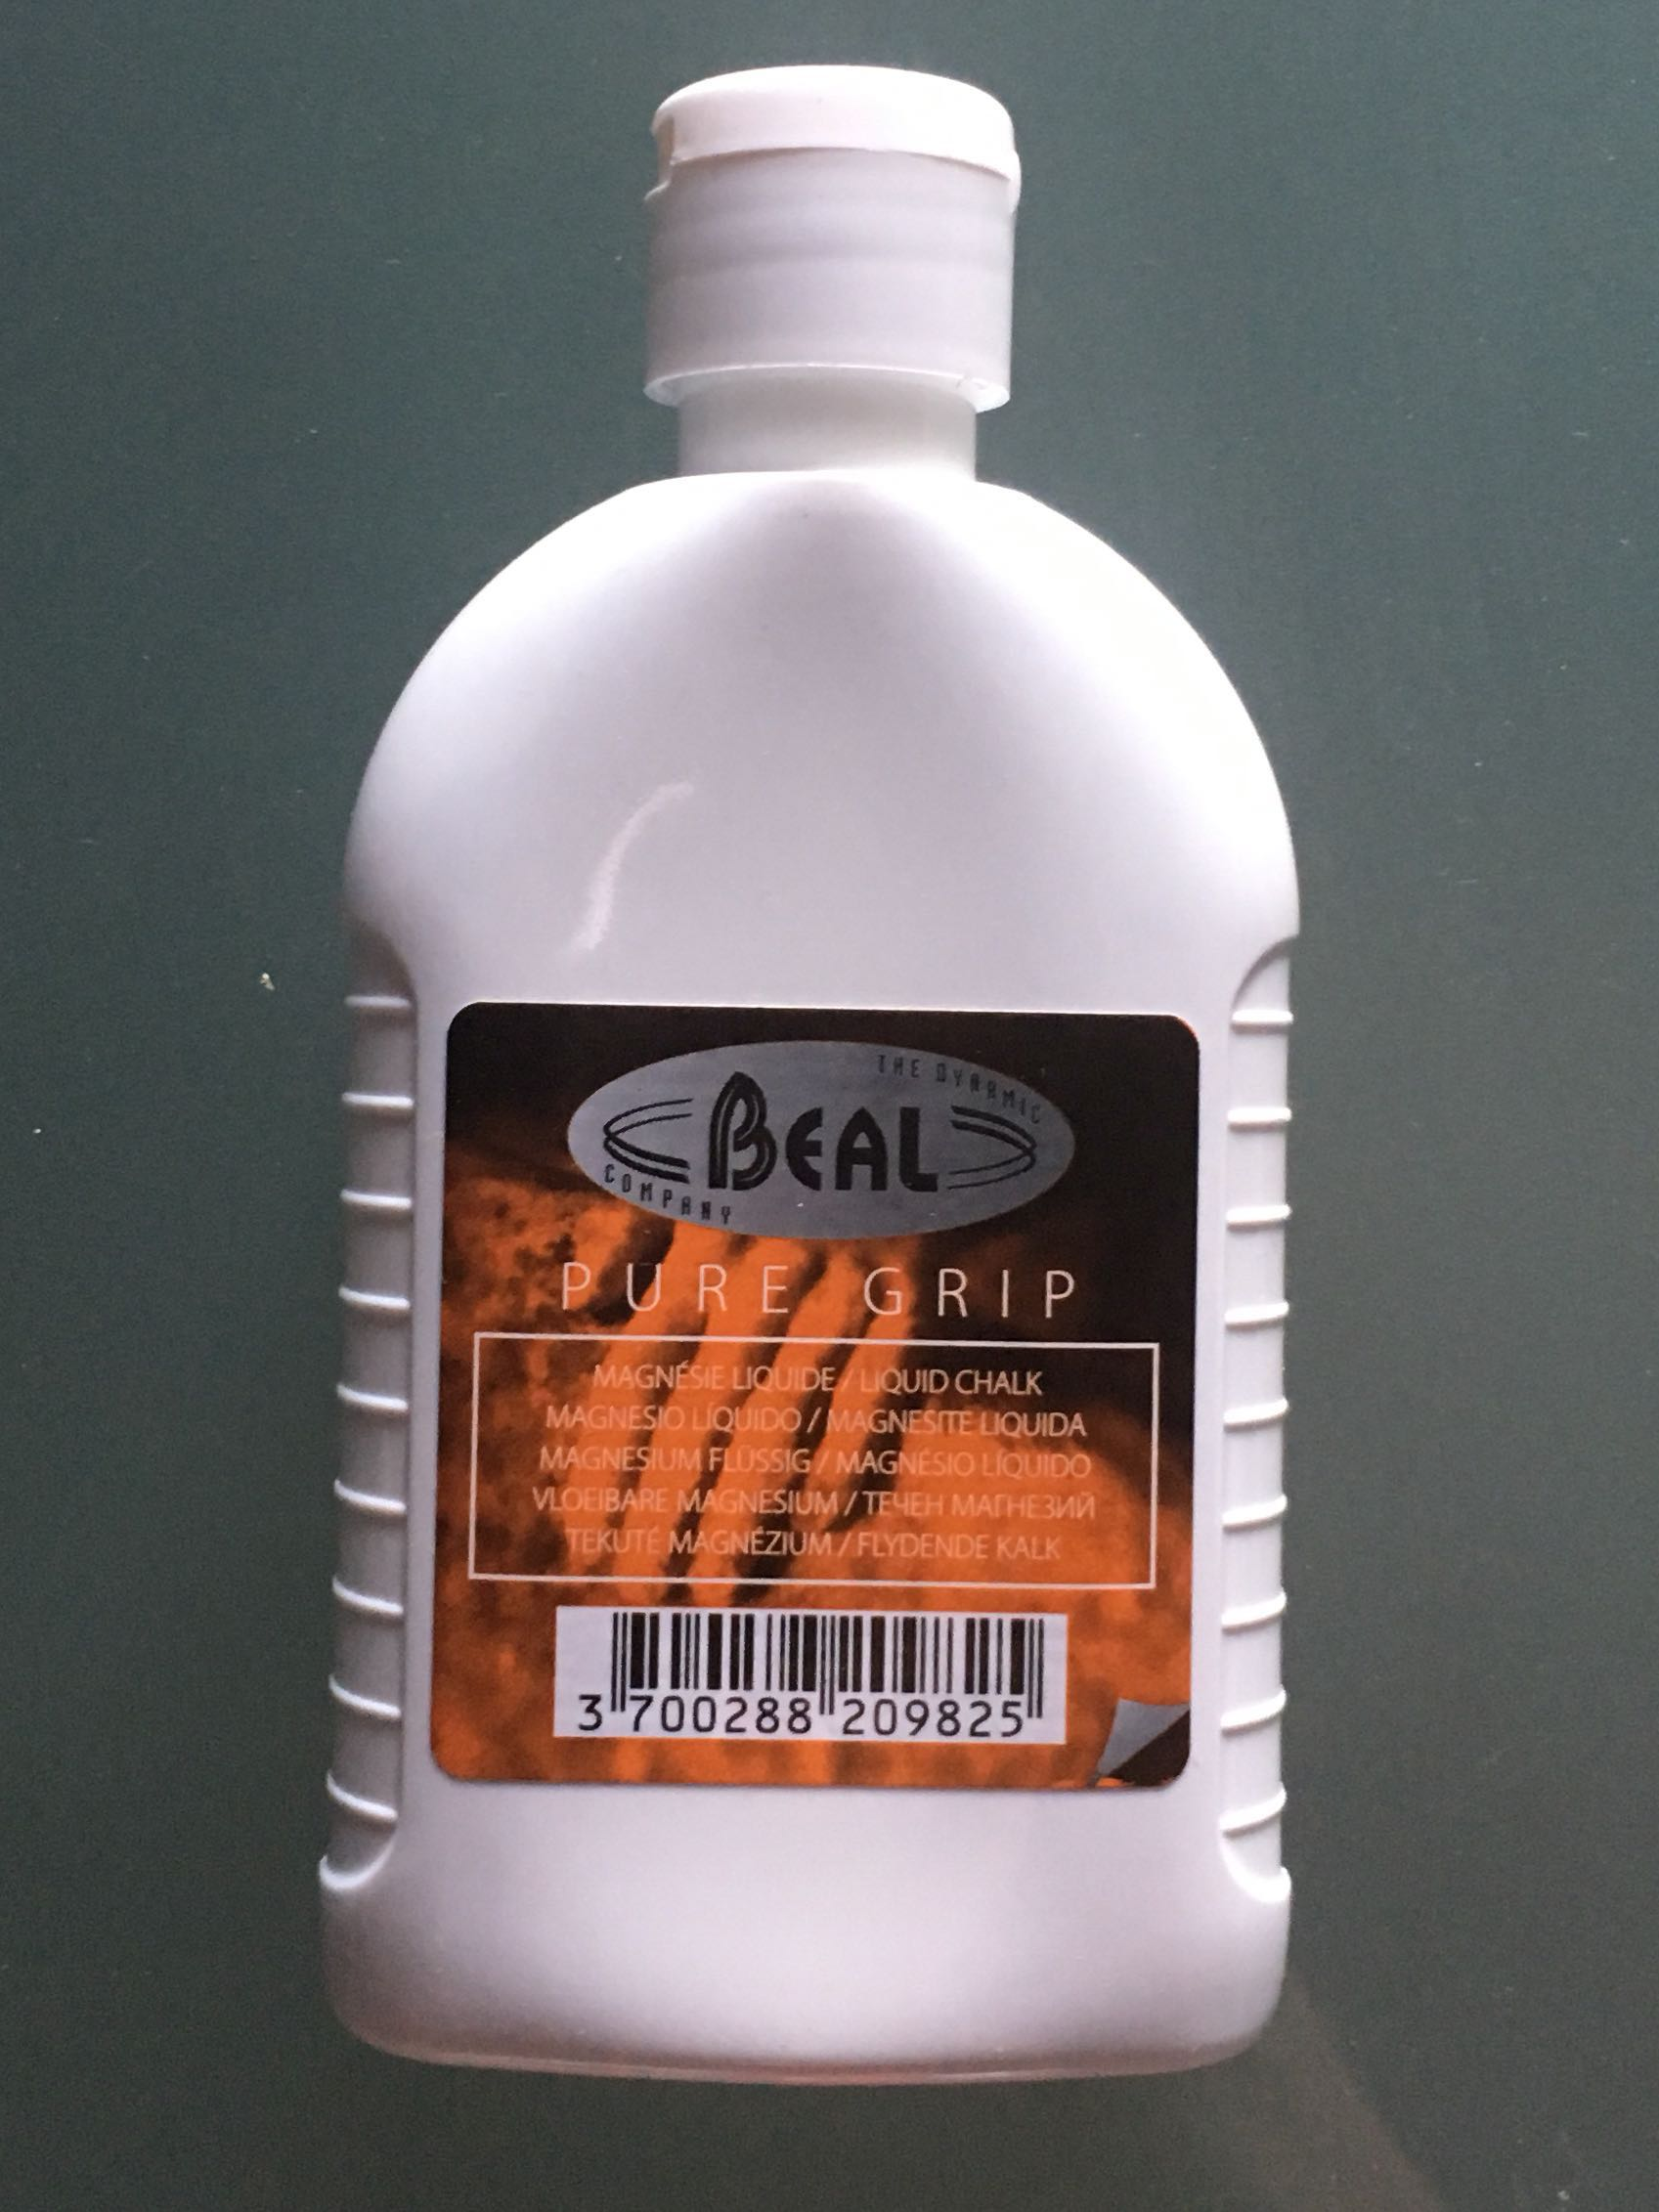 Beal Pure grip